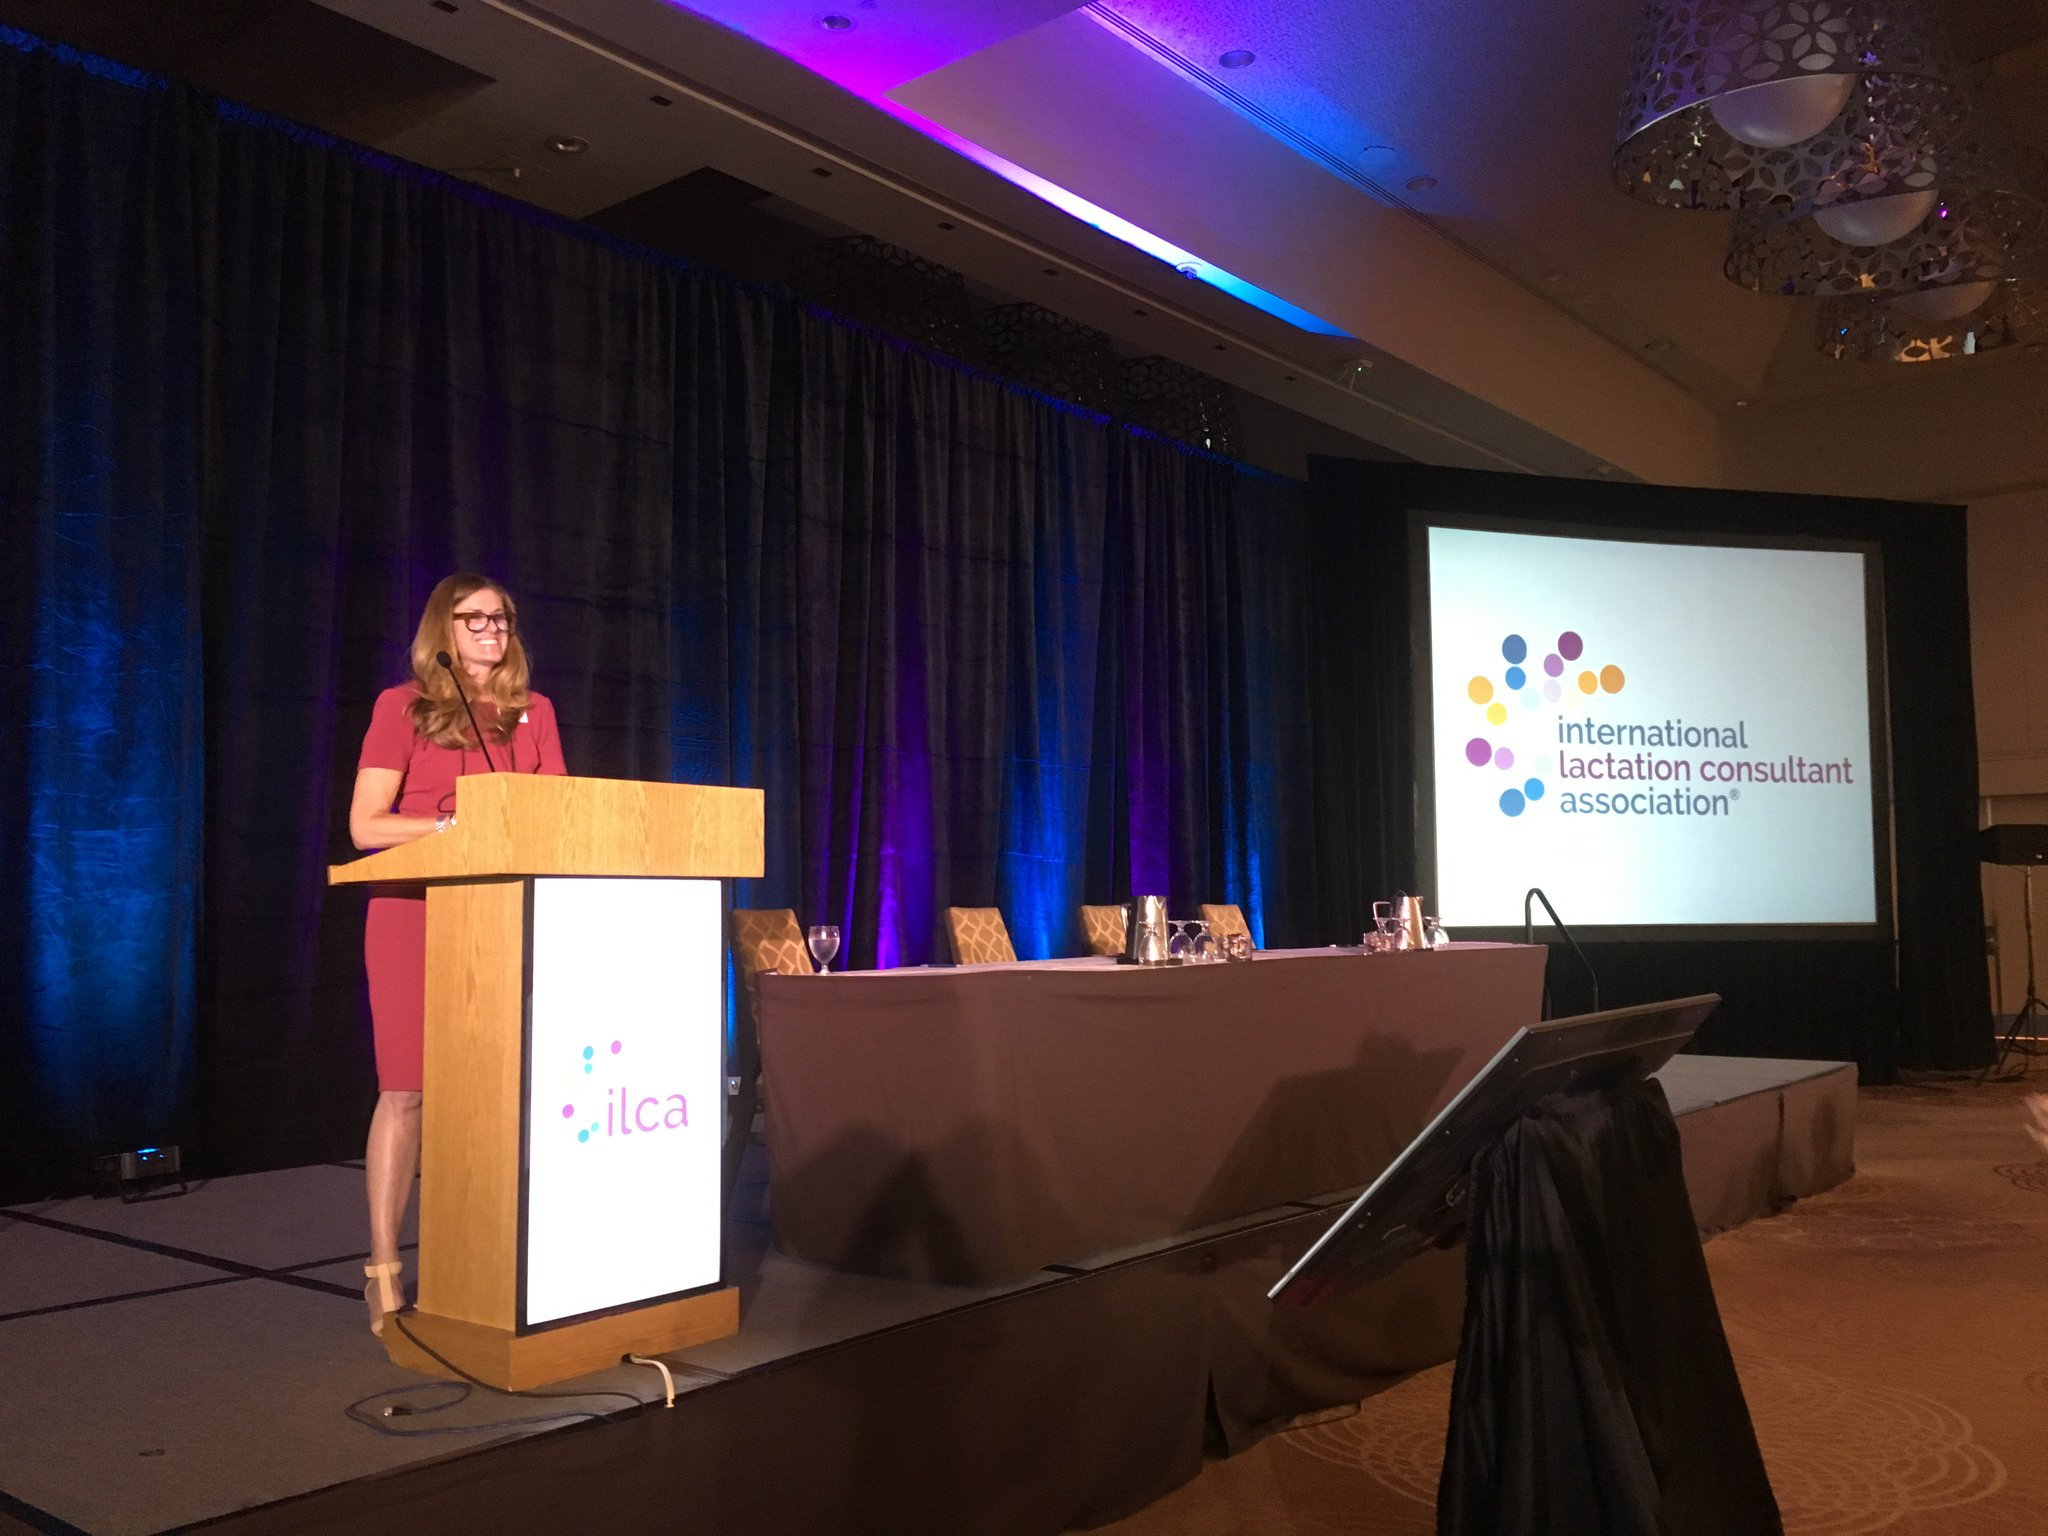 ILCA President Michele Griswold, PhD, MPH, RN, IBCLC, delivers the ILCA president address. #ILCA17 https://t.co/KBH7kw1puk